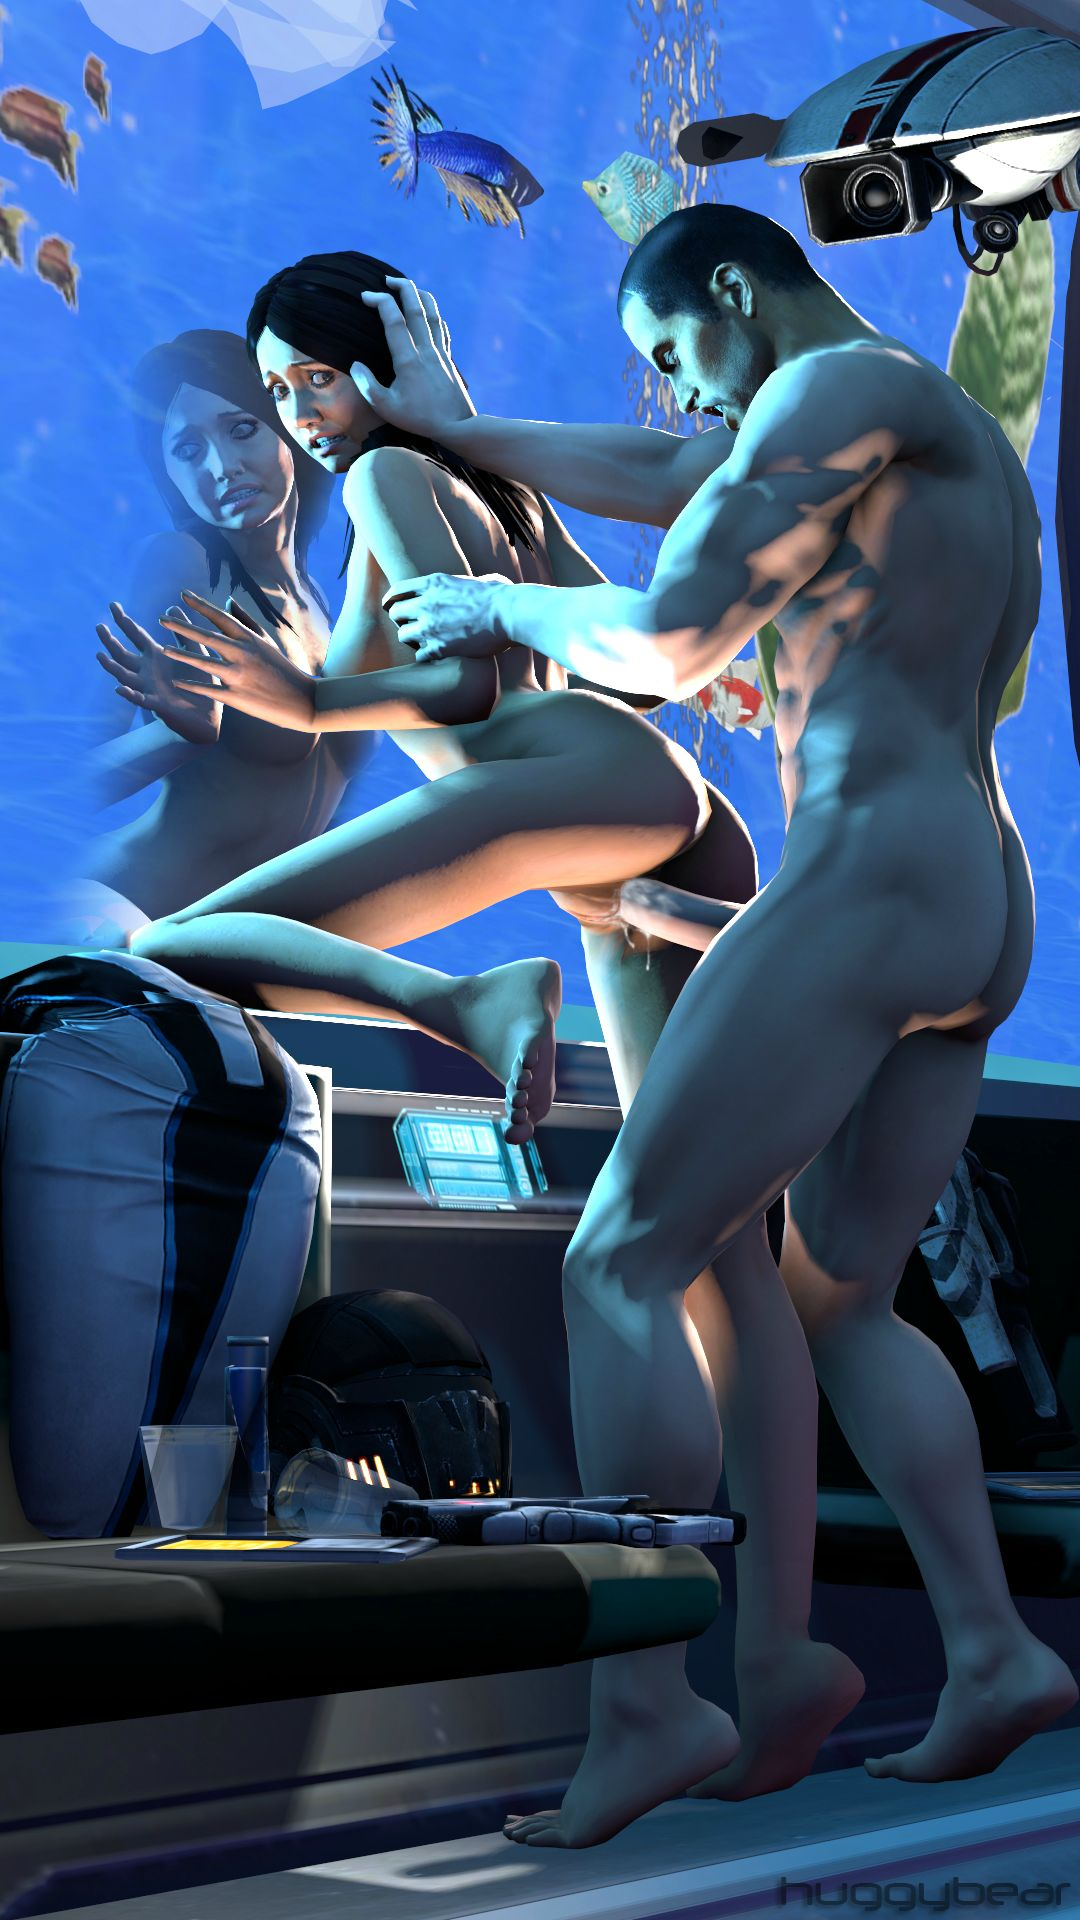 Mass effect 3 lesbian sex video rule  sexy clips